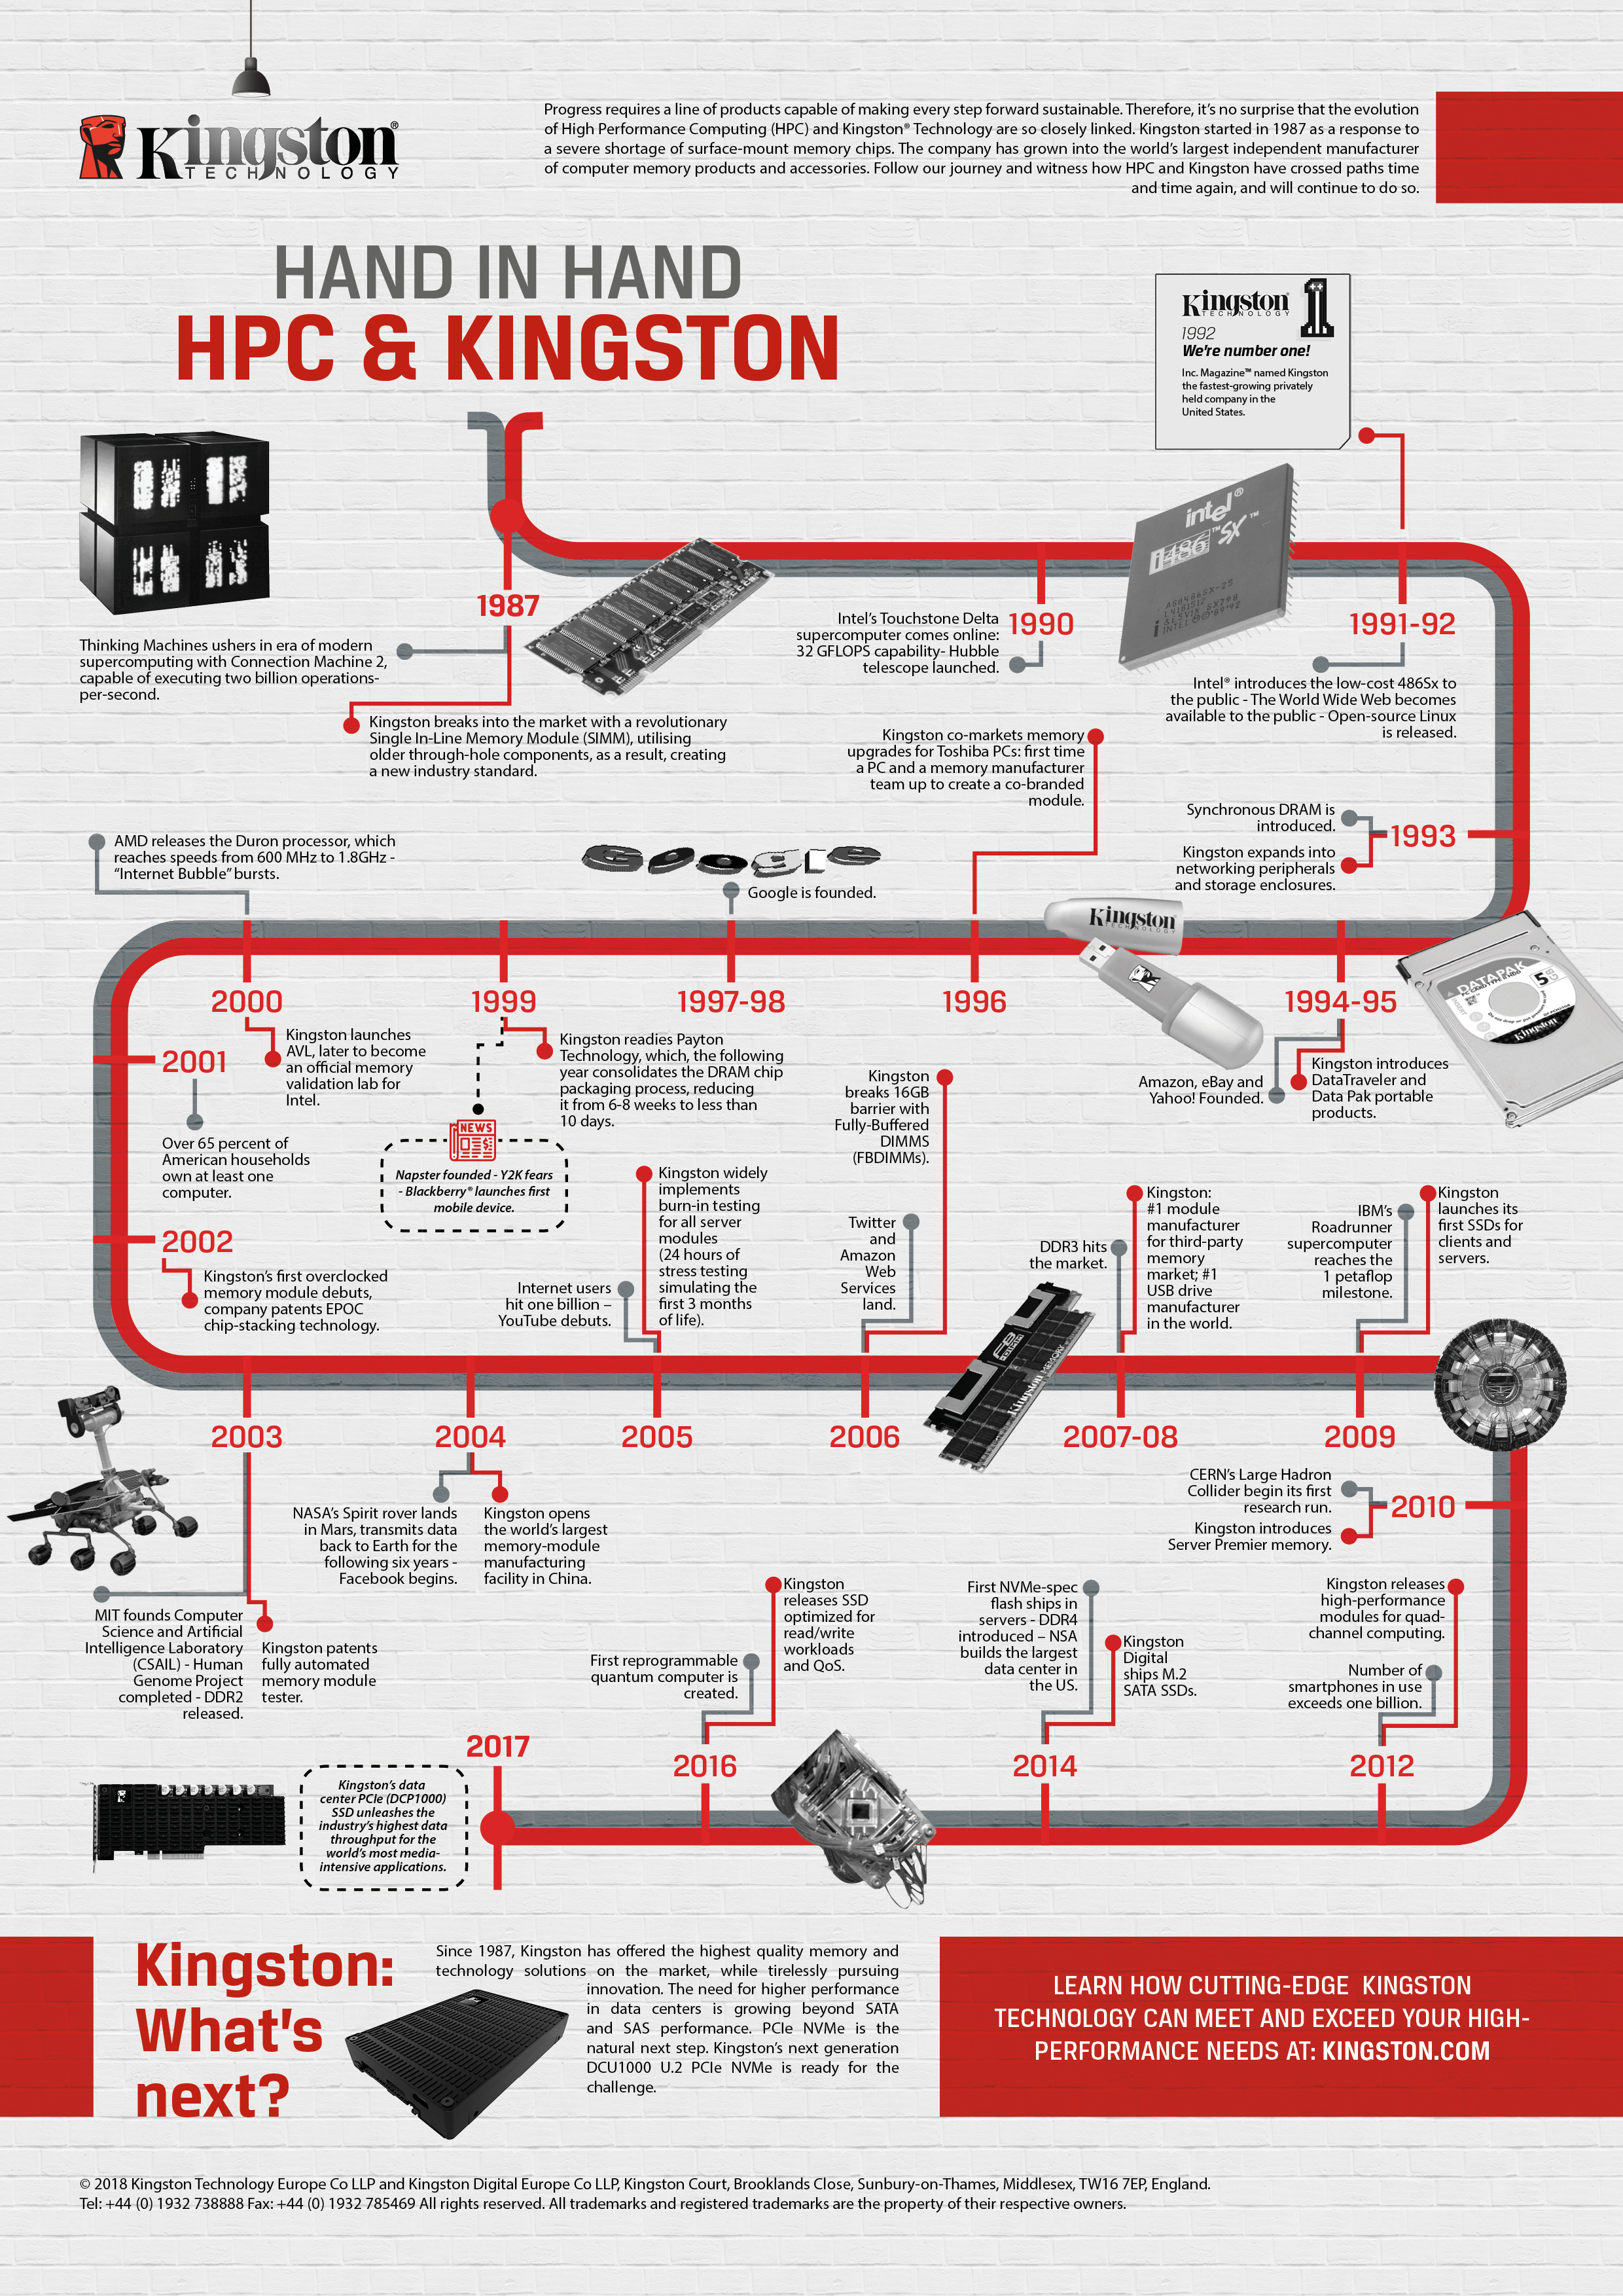 HPC and Kingston: 30 Years of Cutting-Edge Technology